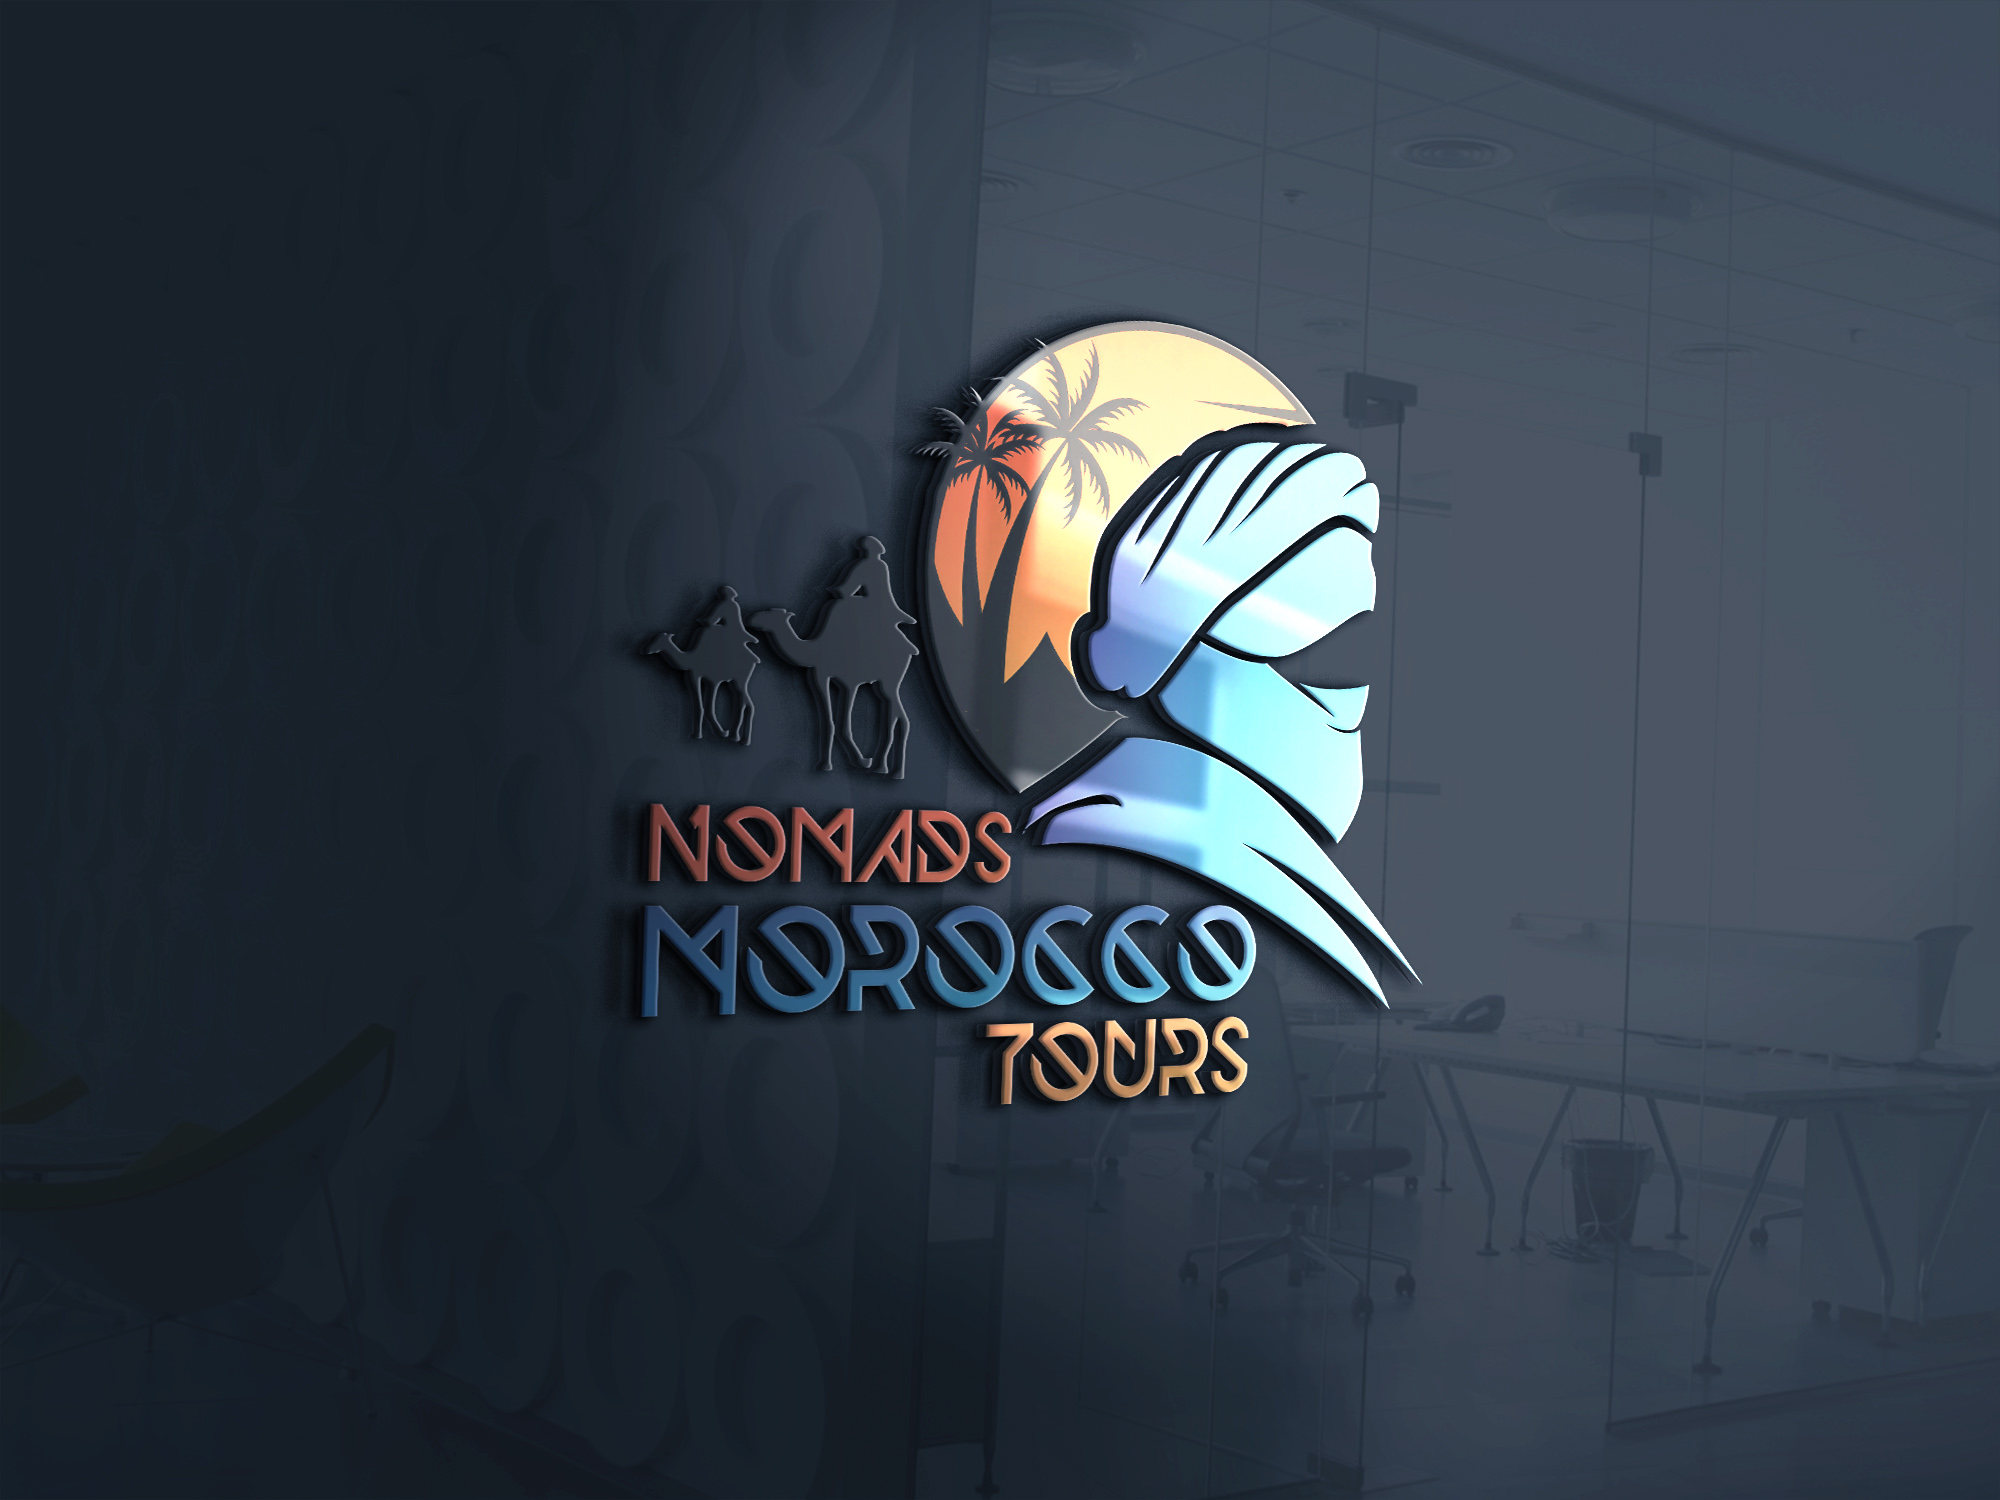 Nomads Morocco Tours Highlights Beauty Through Guided Tours